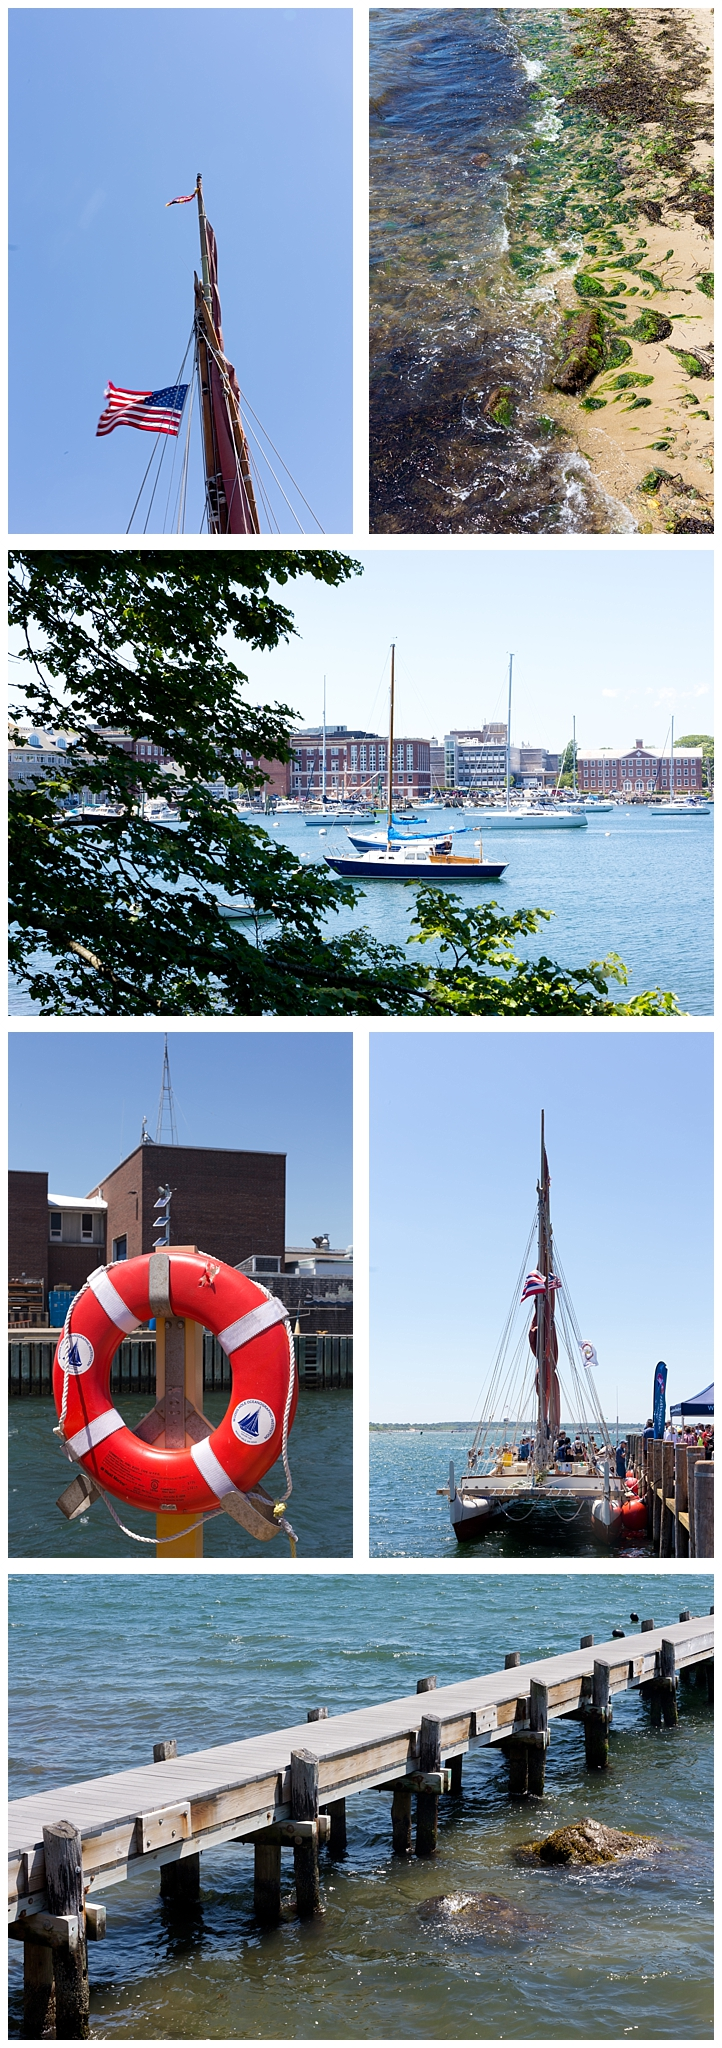 nautical fun in Woods Hole, Massachusetts (boats, pier on Cape Cod)